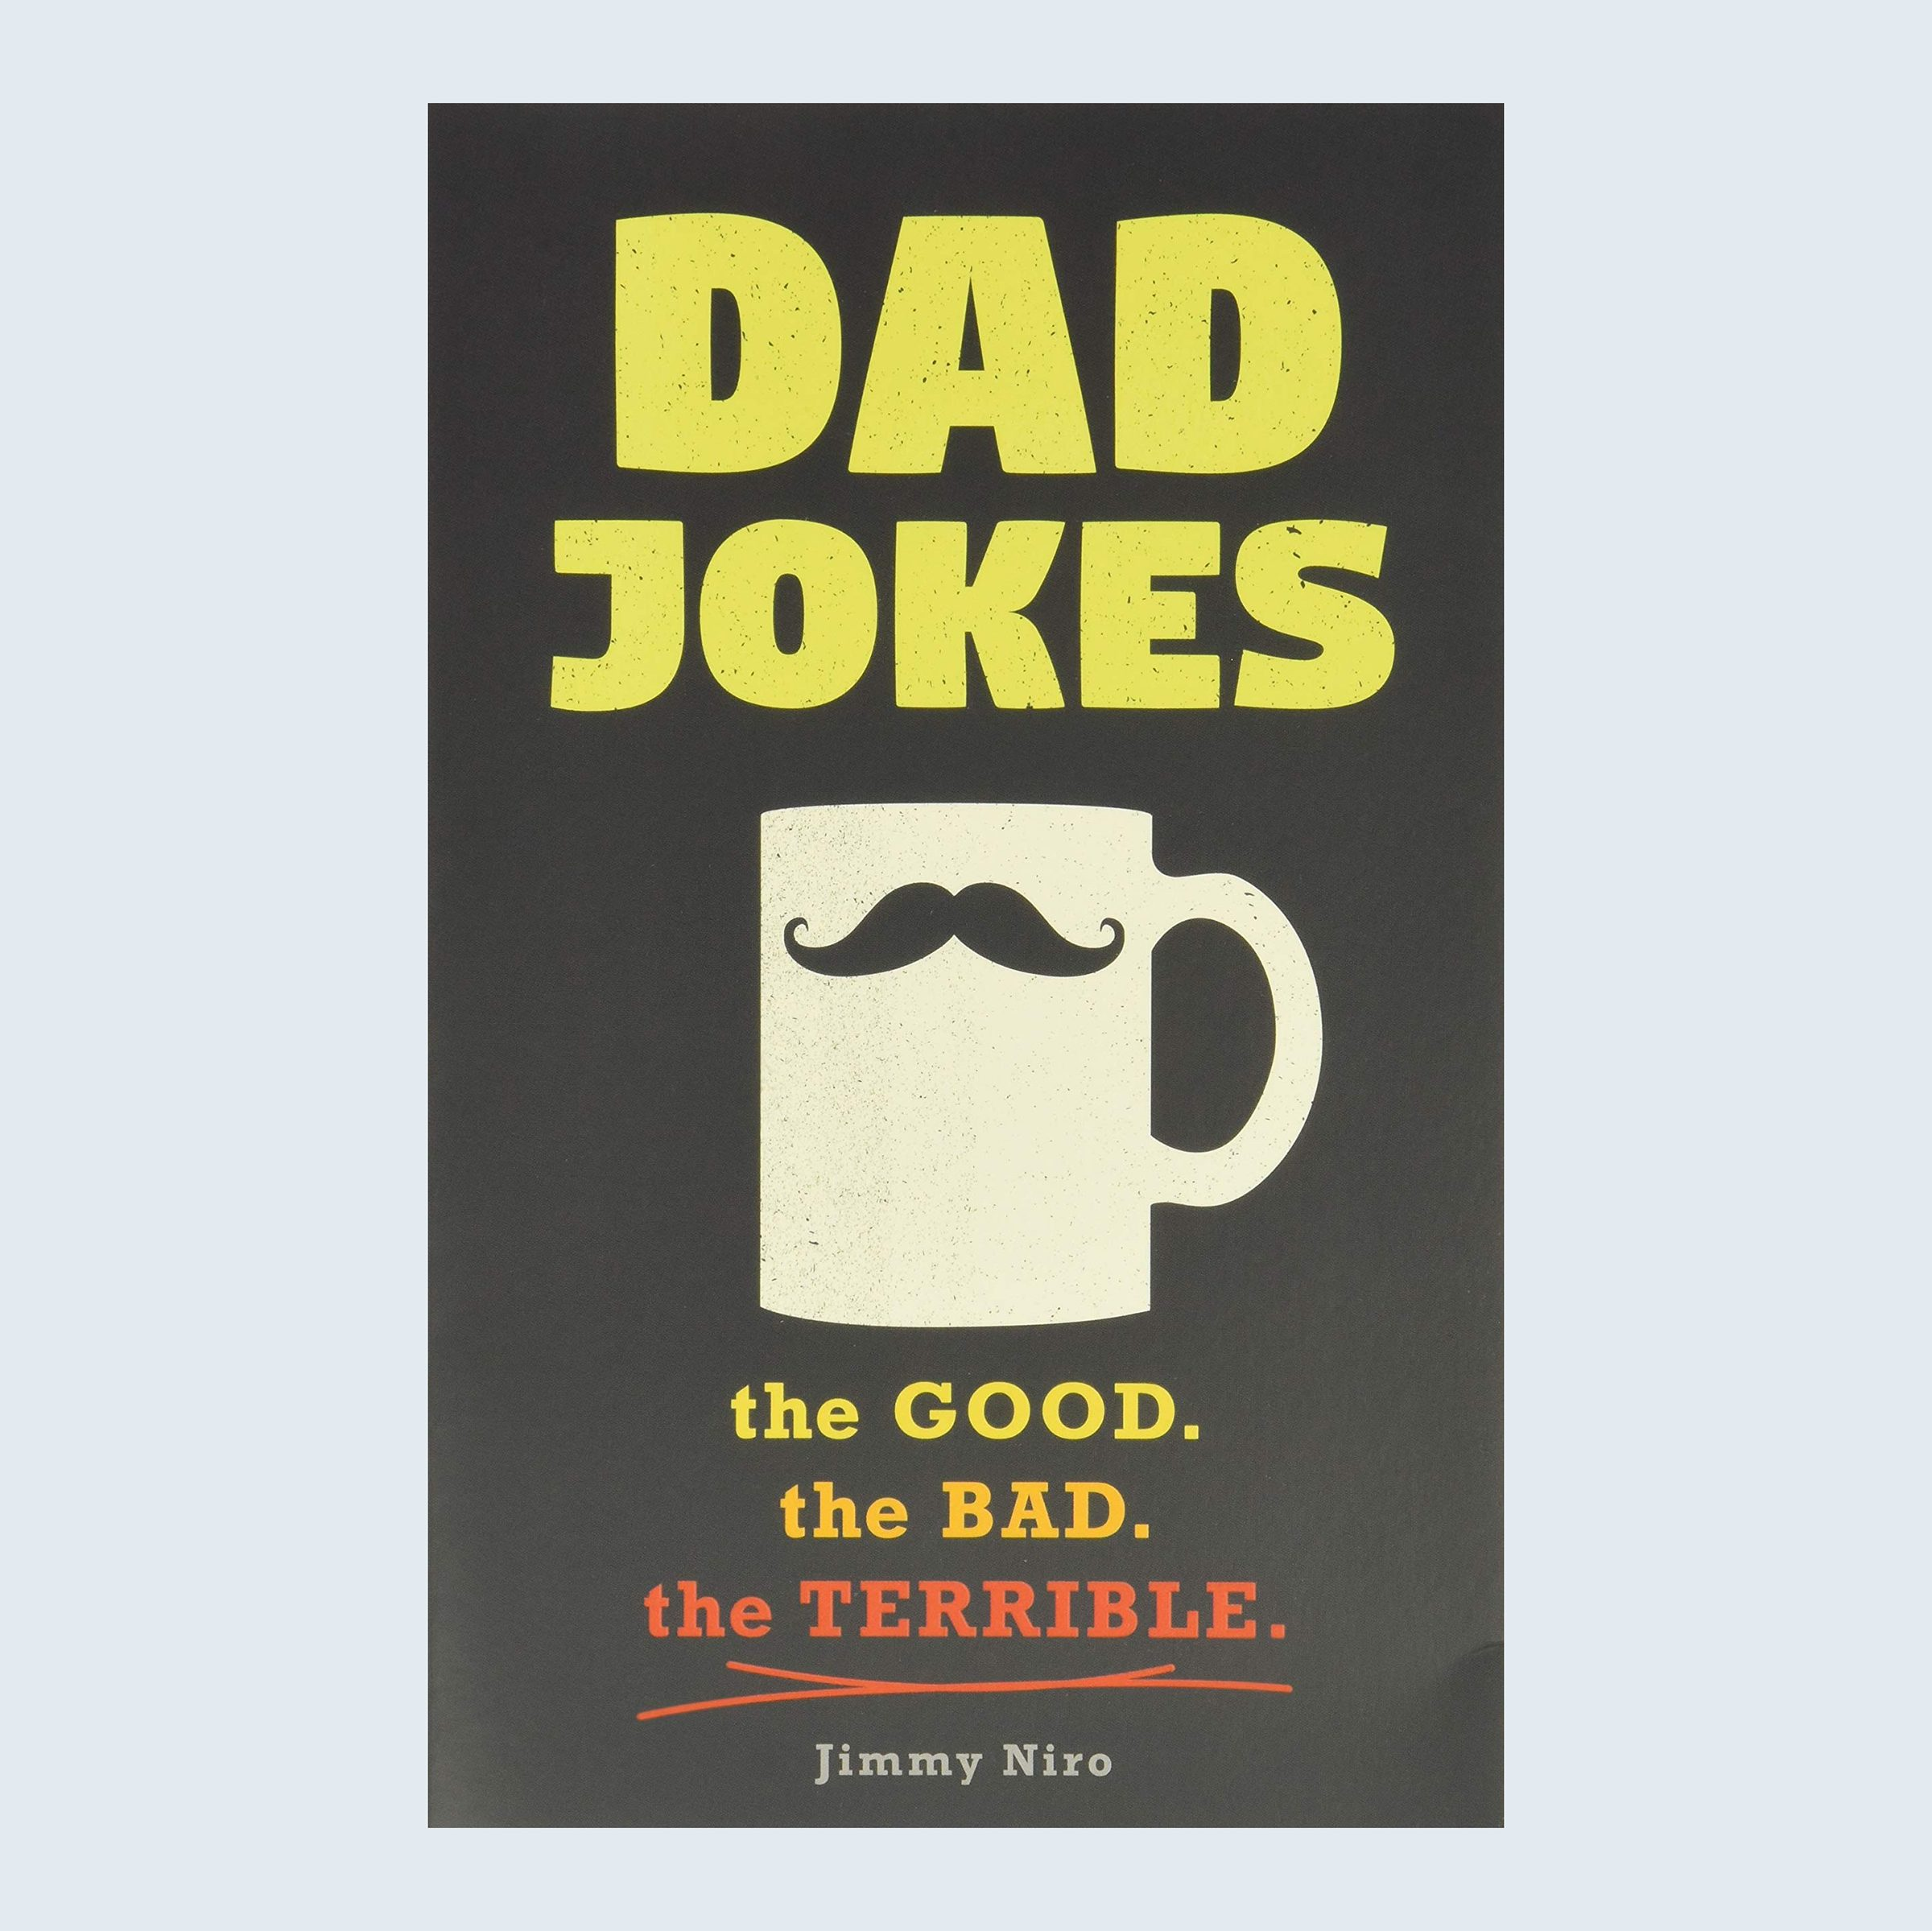 Dad Jokes: The Good. The Bad. The Terrible.